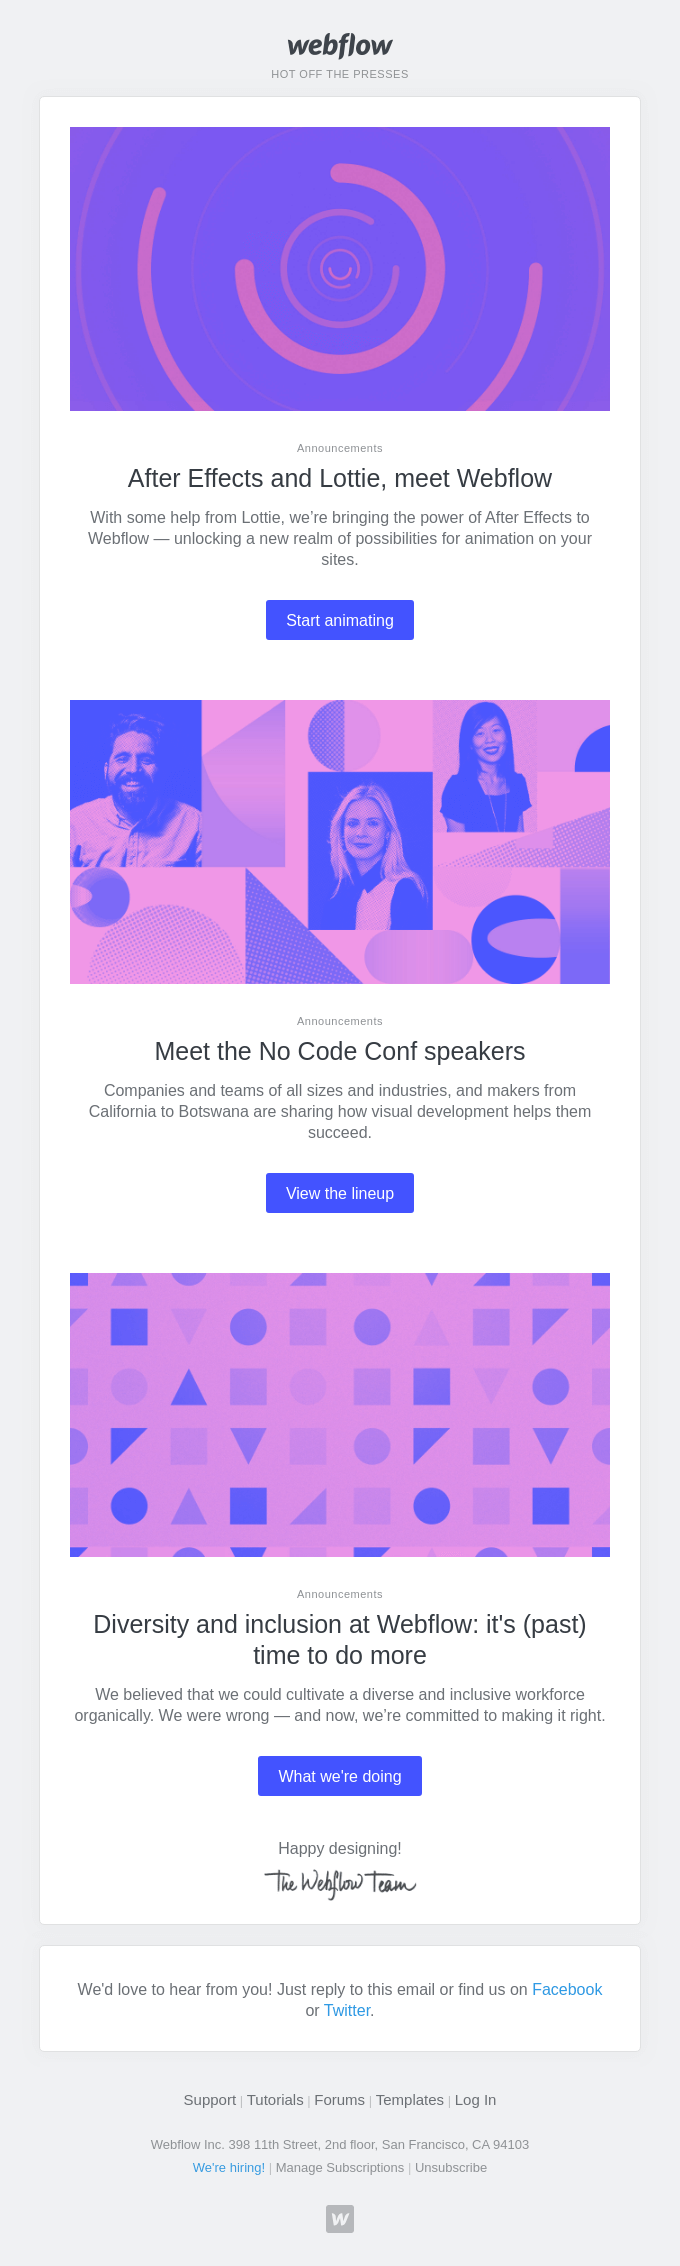 🎉 Lottie is here + 📣 No Code Conf speakers + 👥 Diversity at Webflow